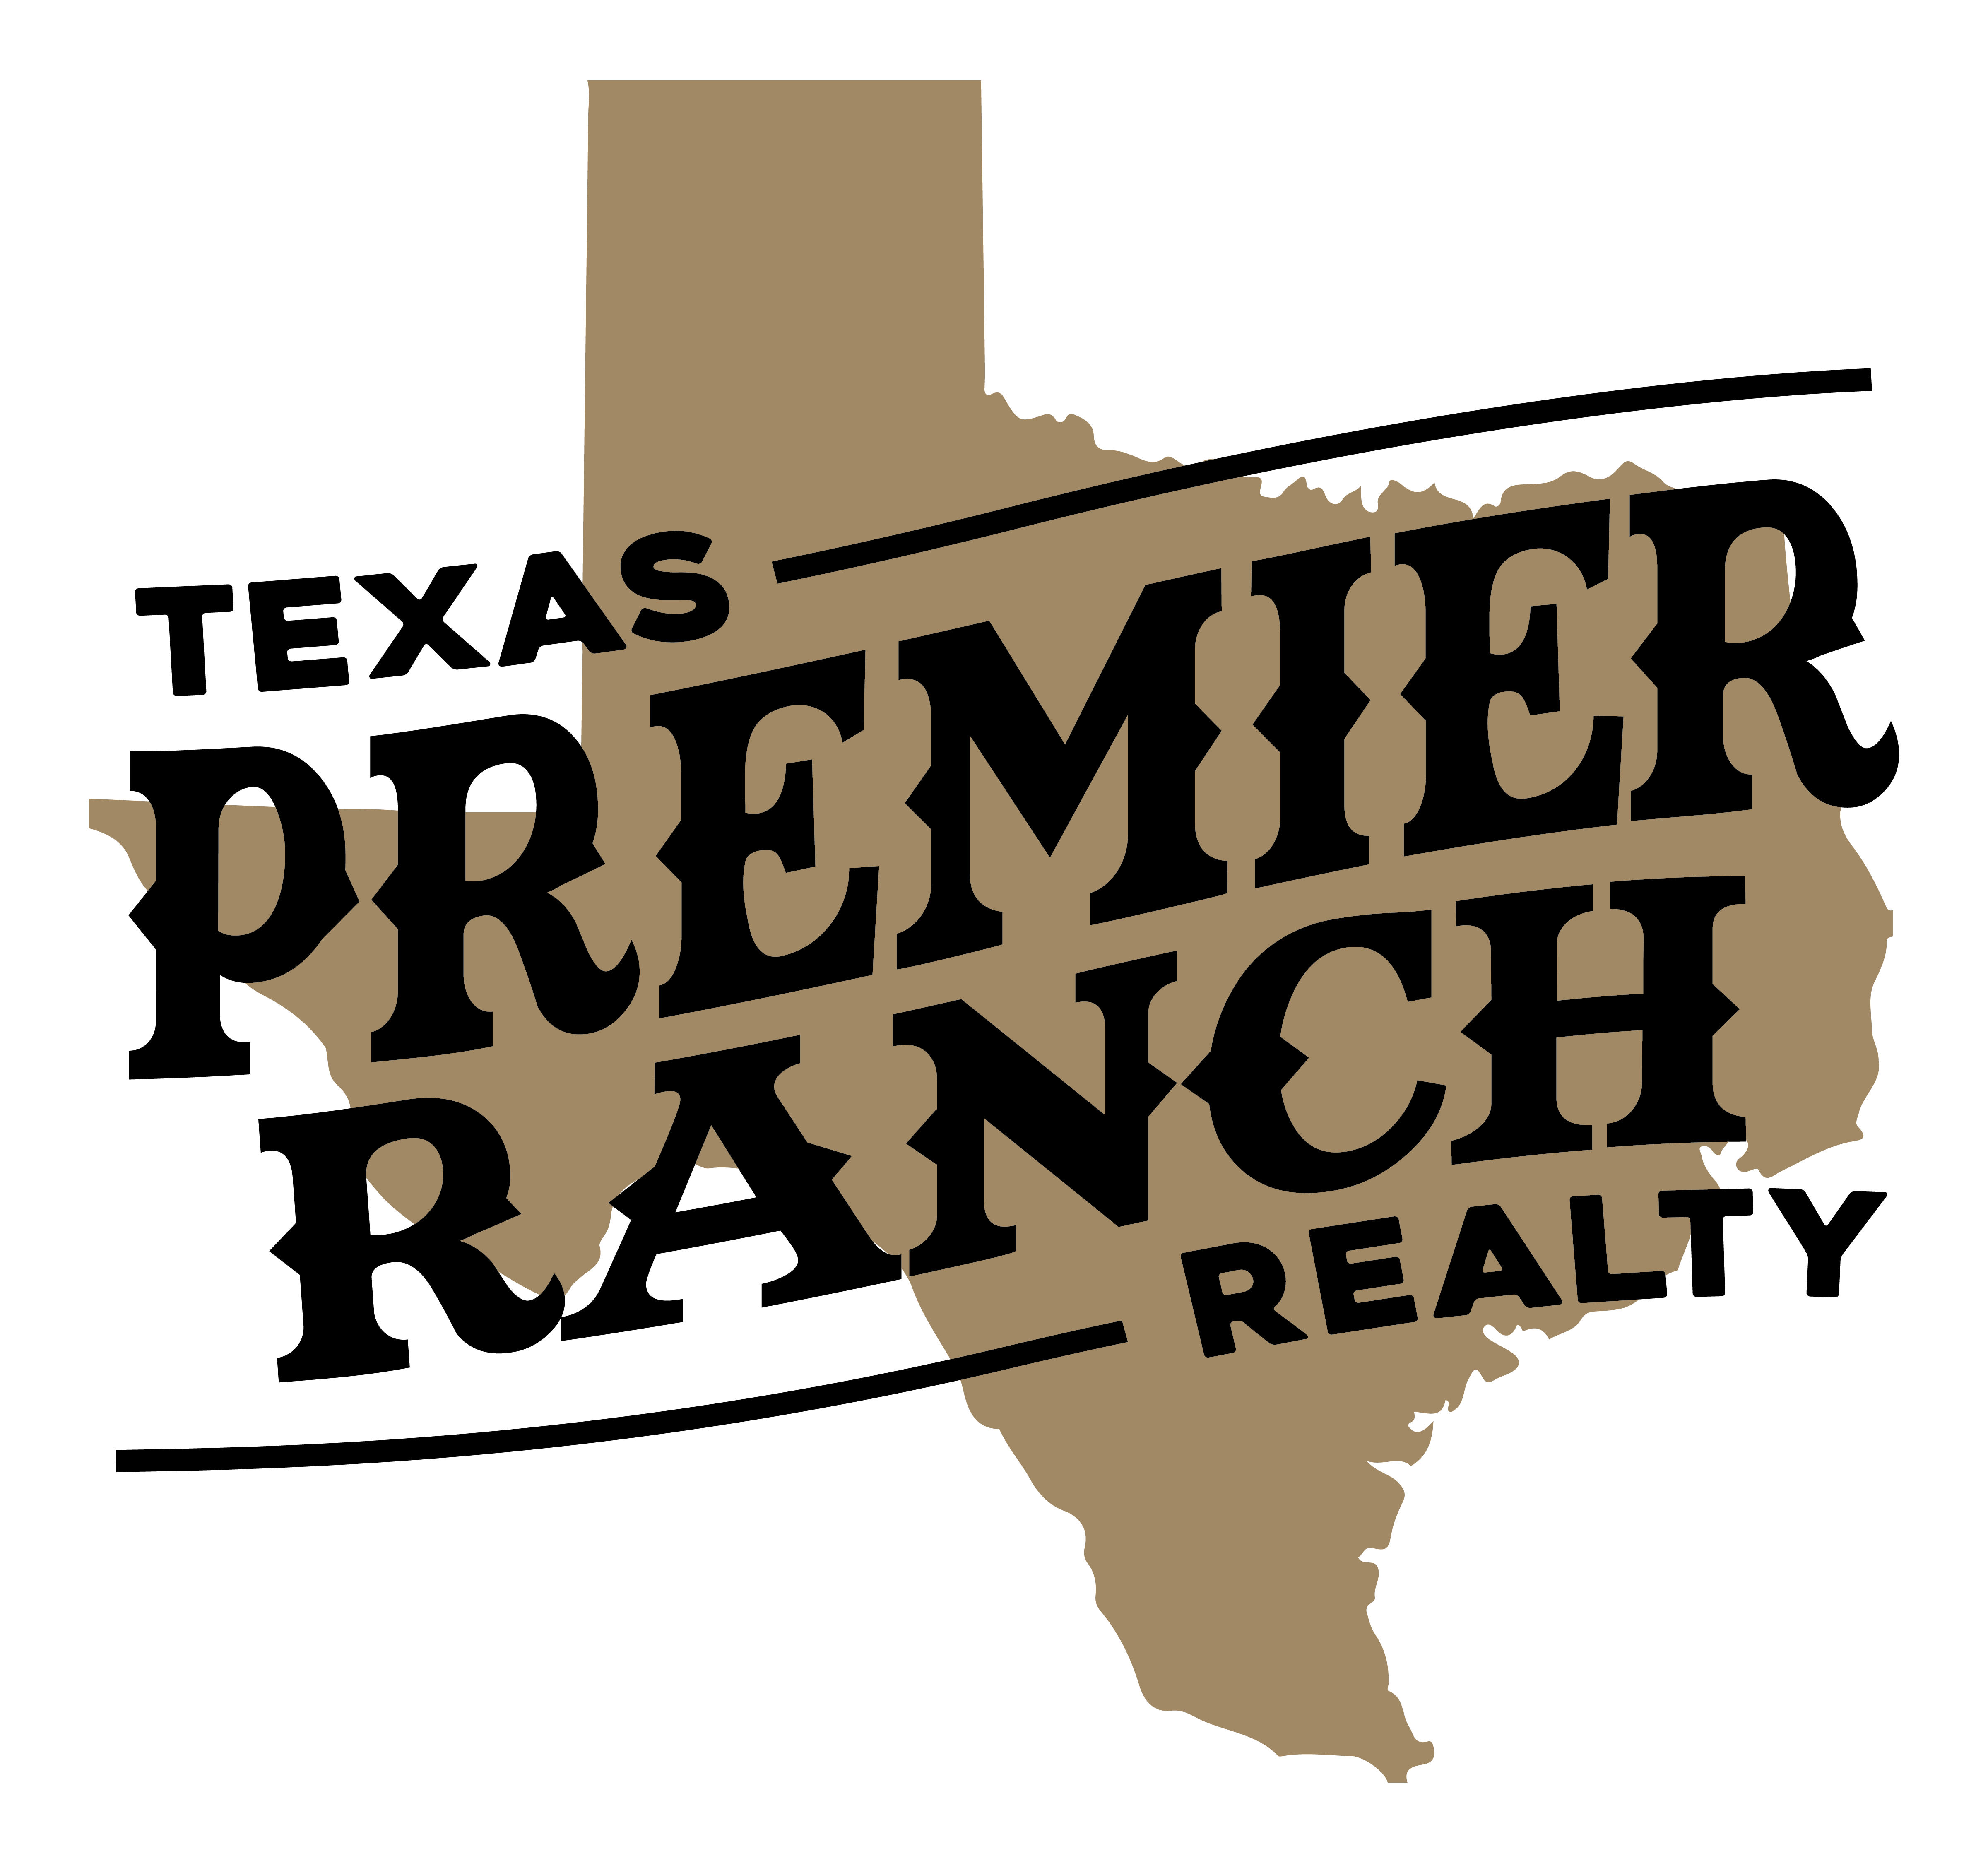 Texas Premier Ranch Realty